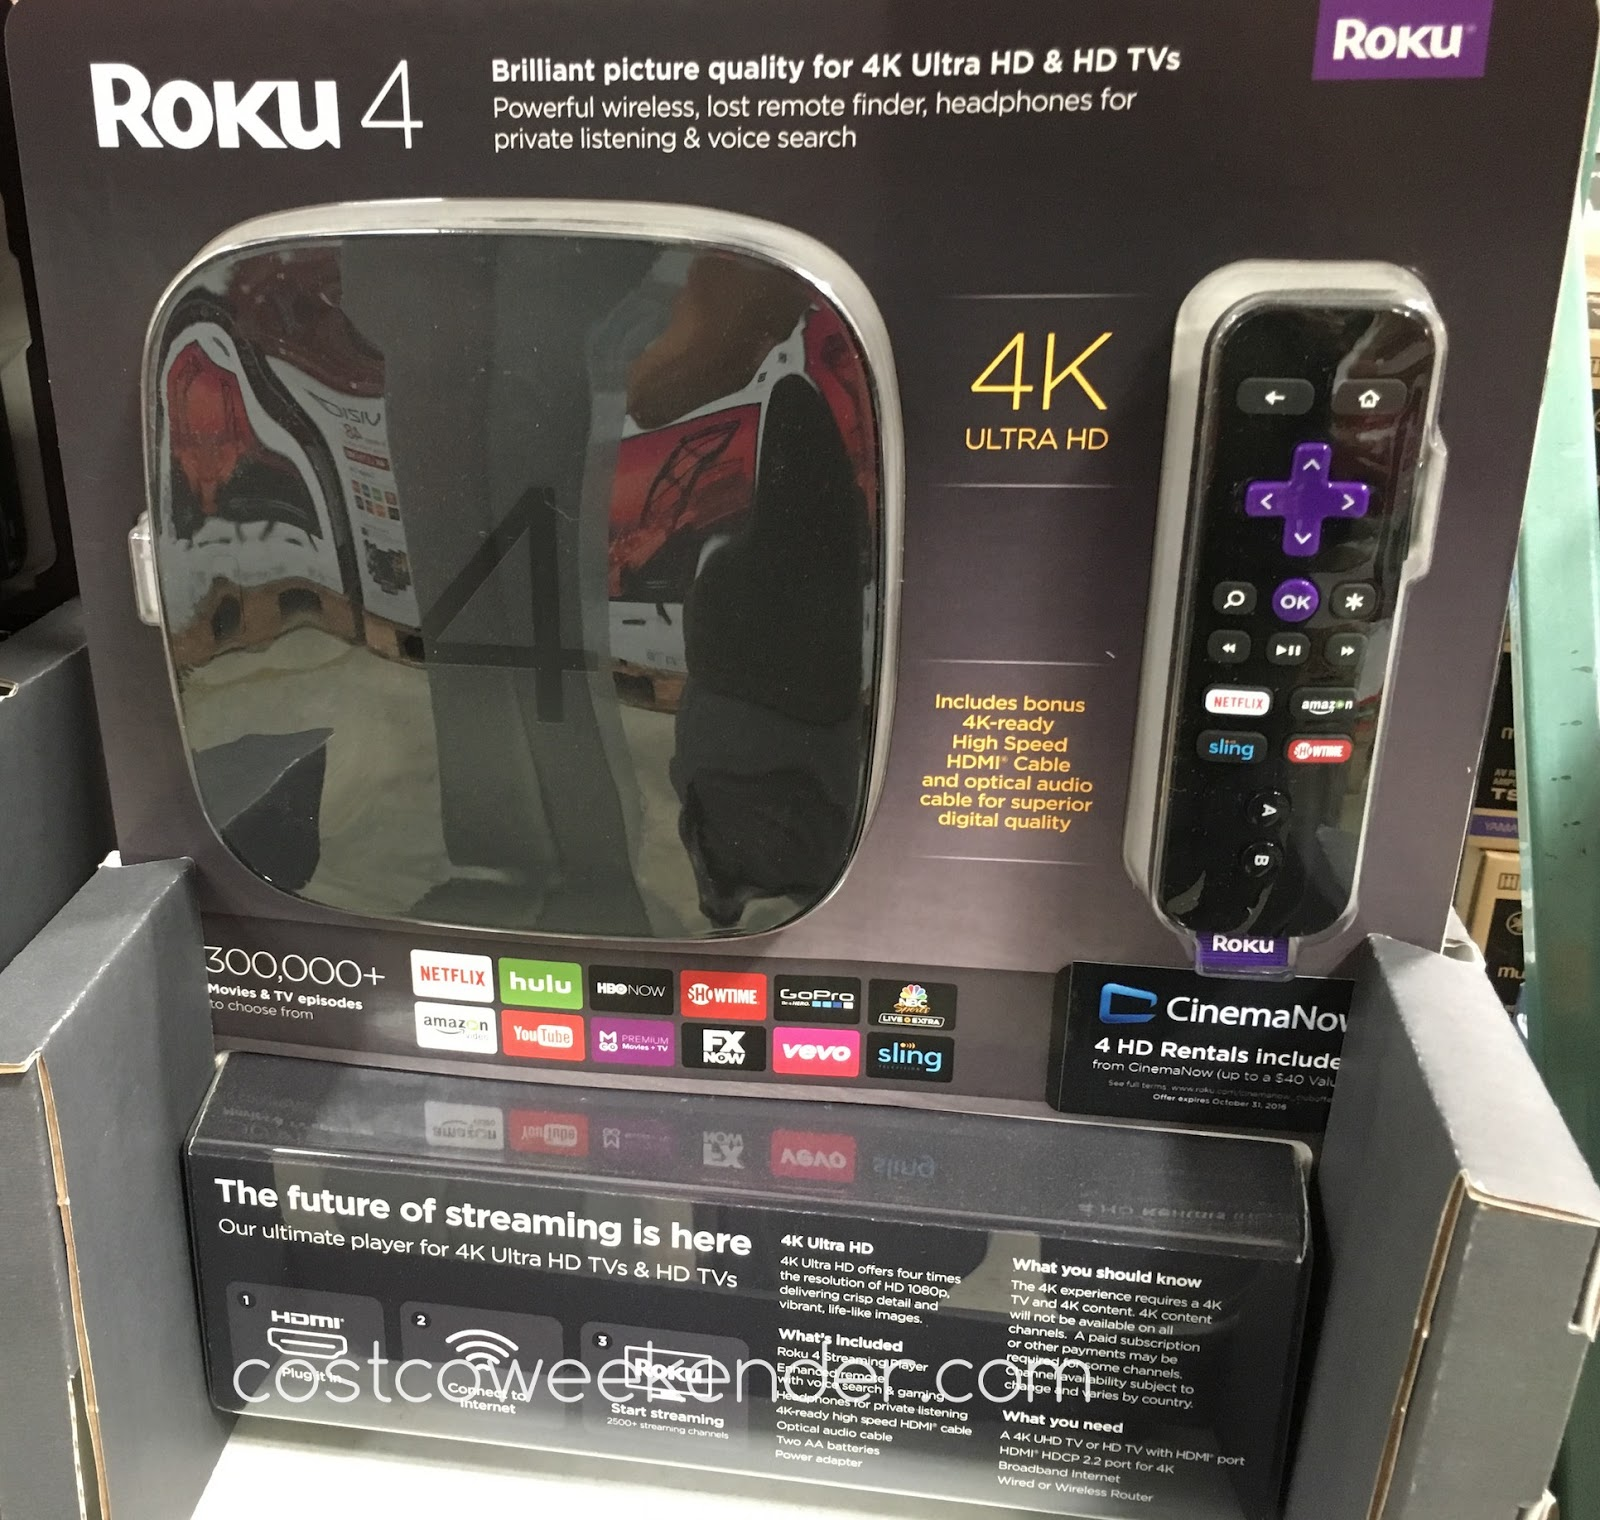 Stream to your heart's content with the Roku 4 Streaming Player With Enhanced Remote